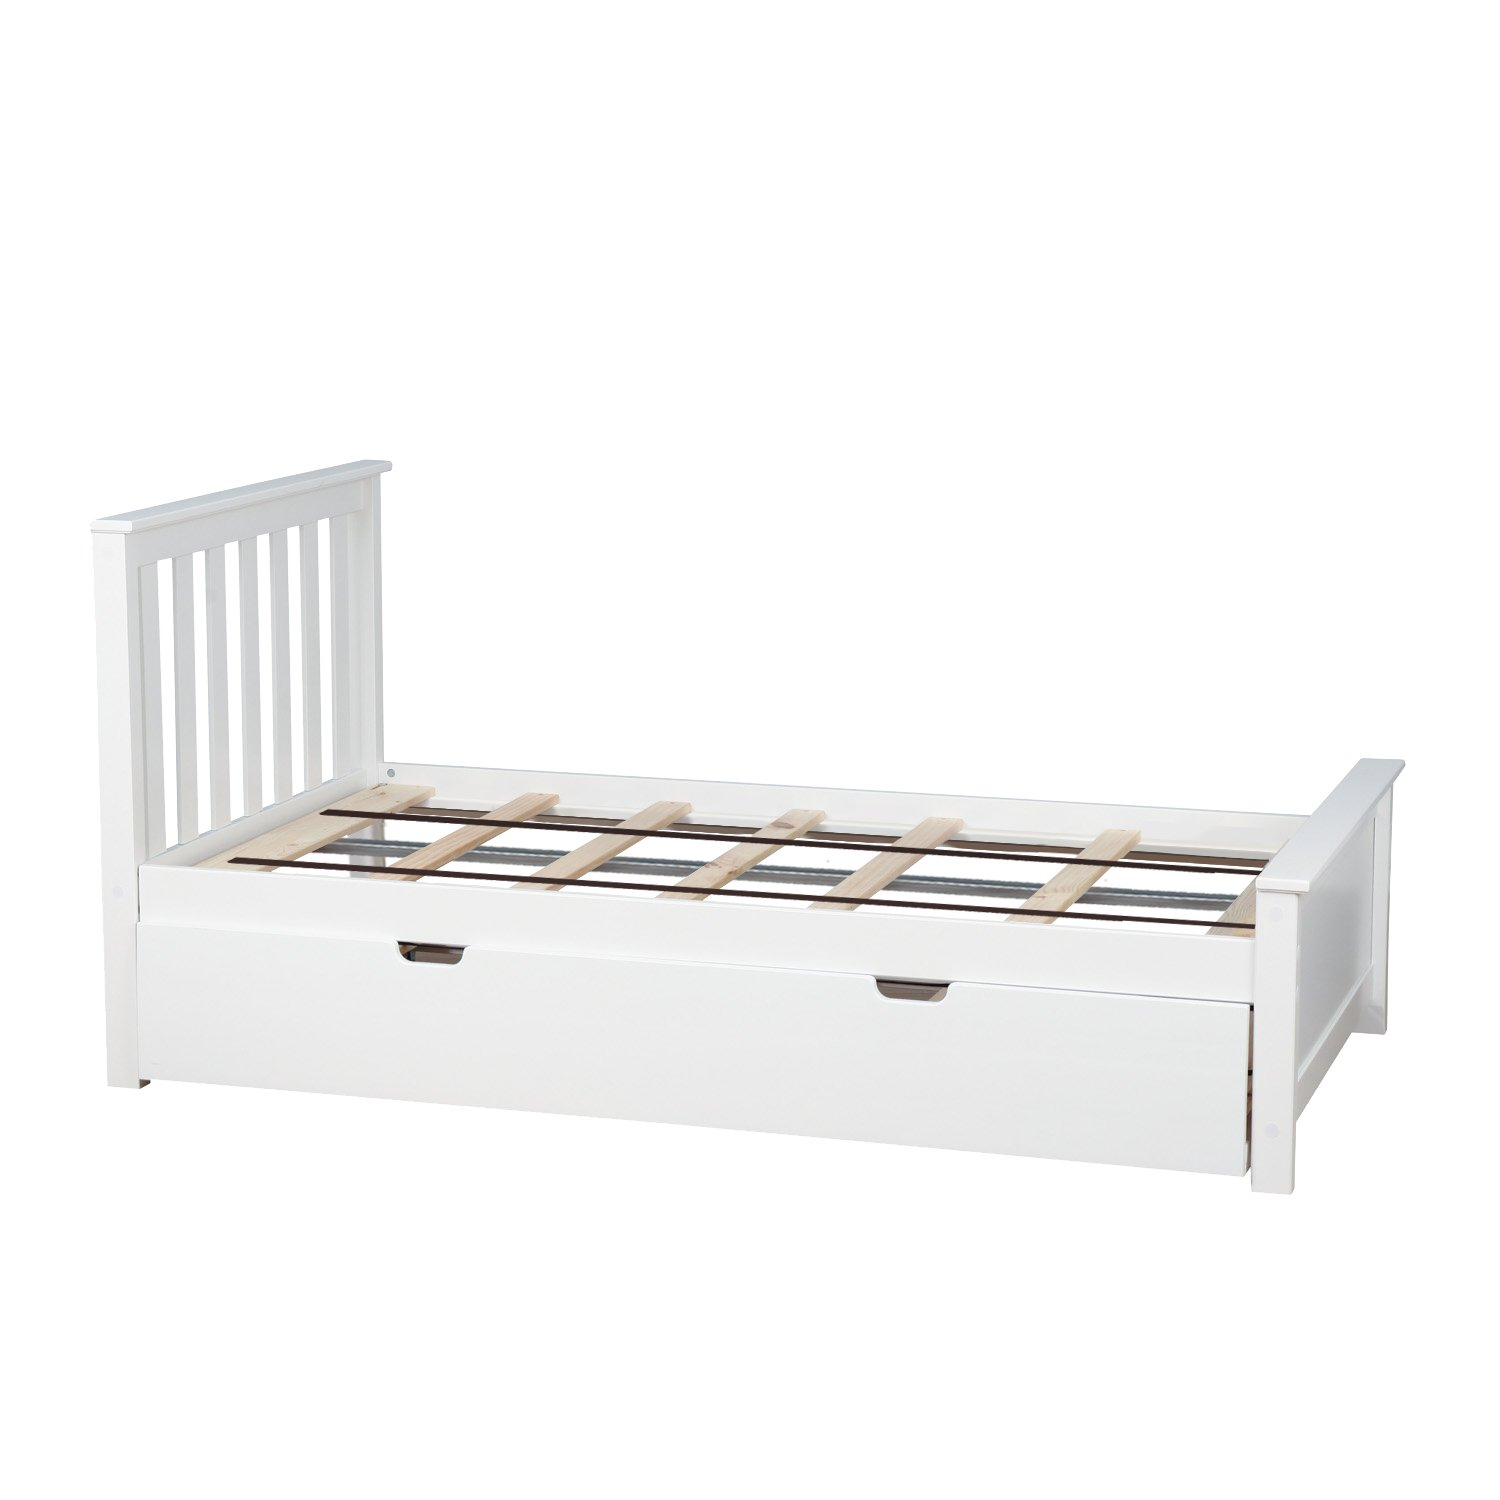 Max & Lily Solid Wood Twin-Size Bed with Trundle Bed, White by Max & Lily